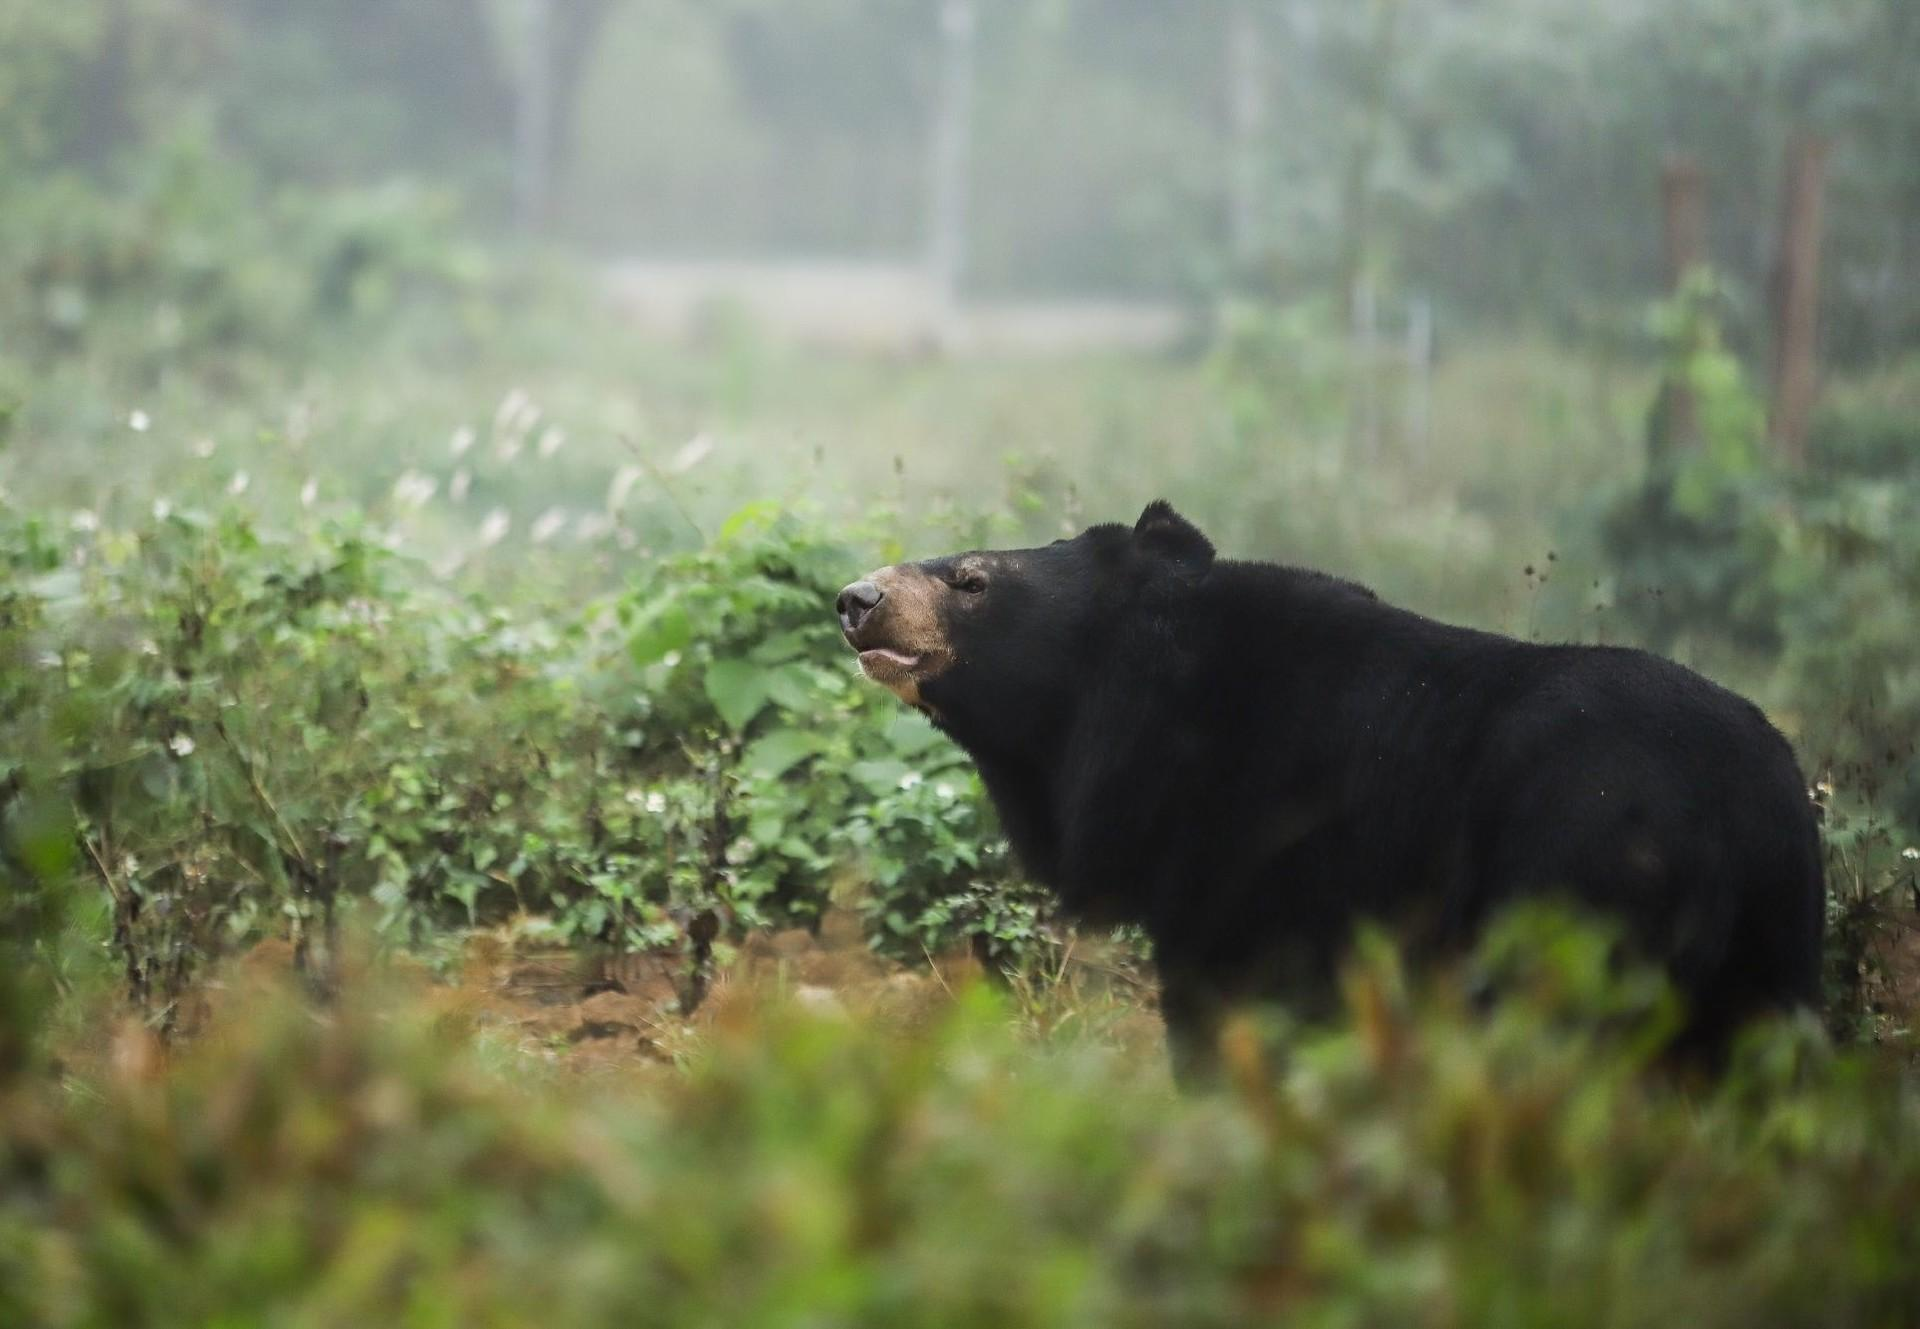 ^Bear at BEAR SANCTUARY Ninh Binh